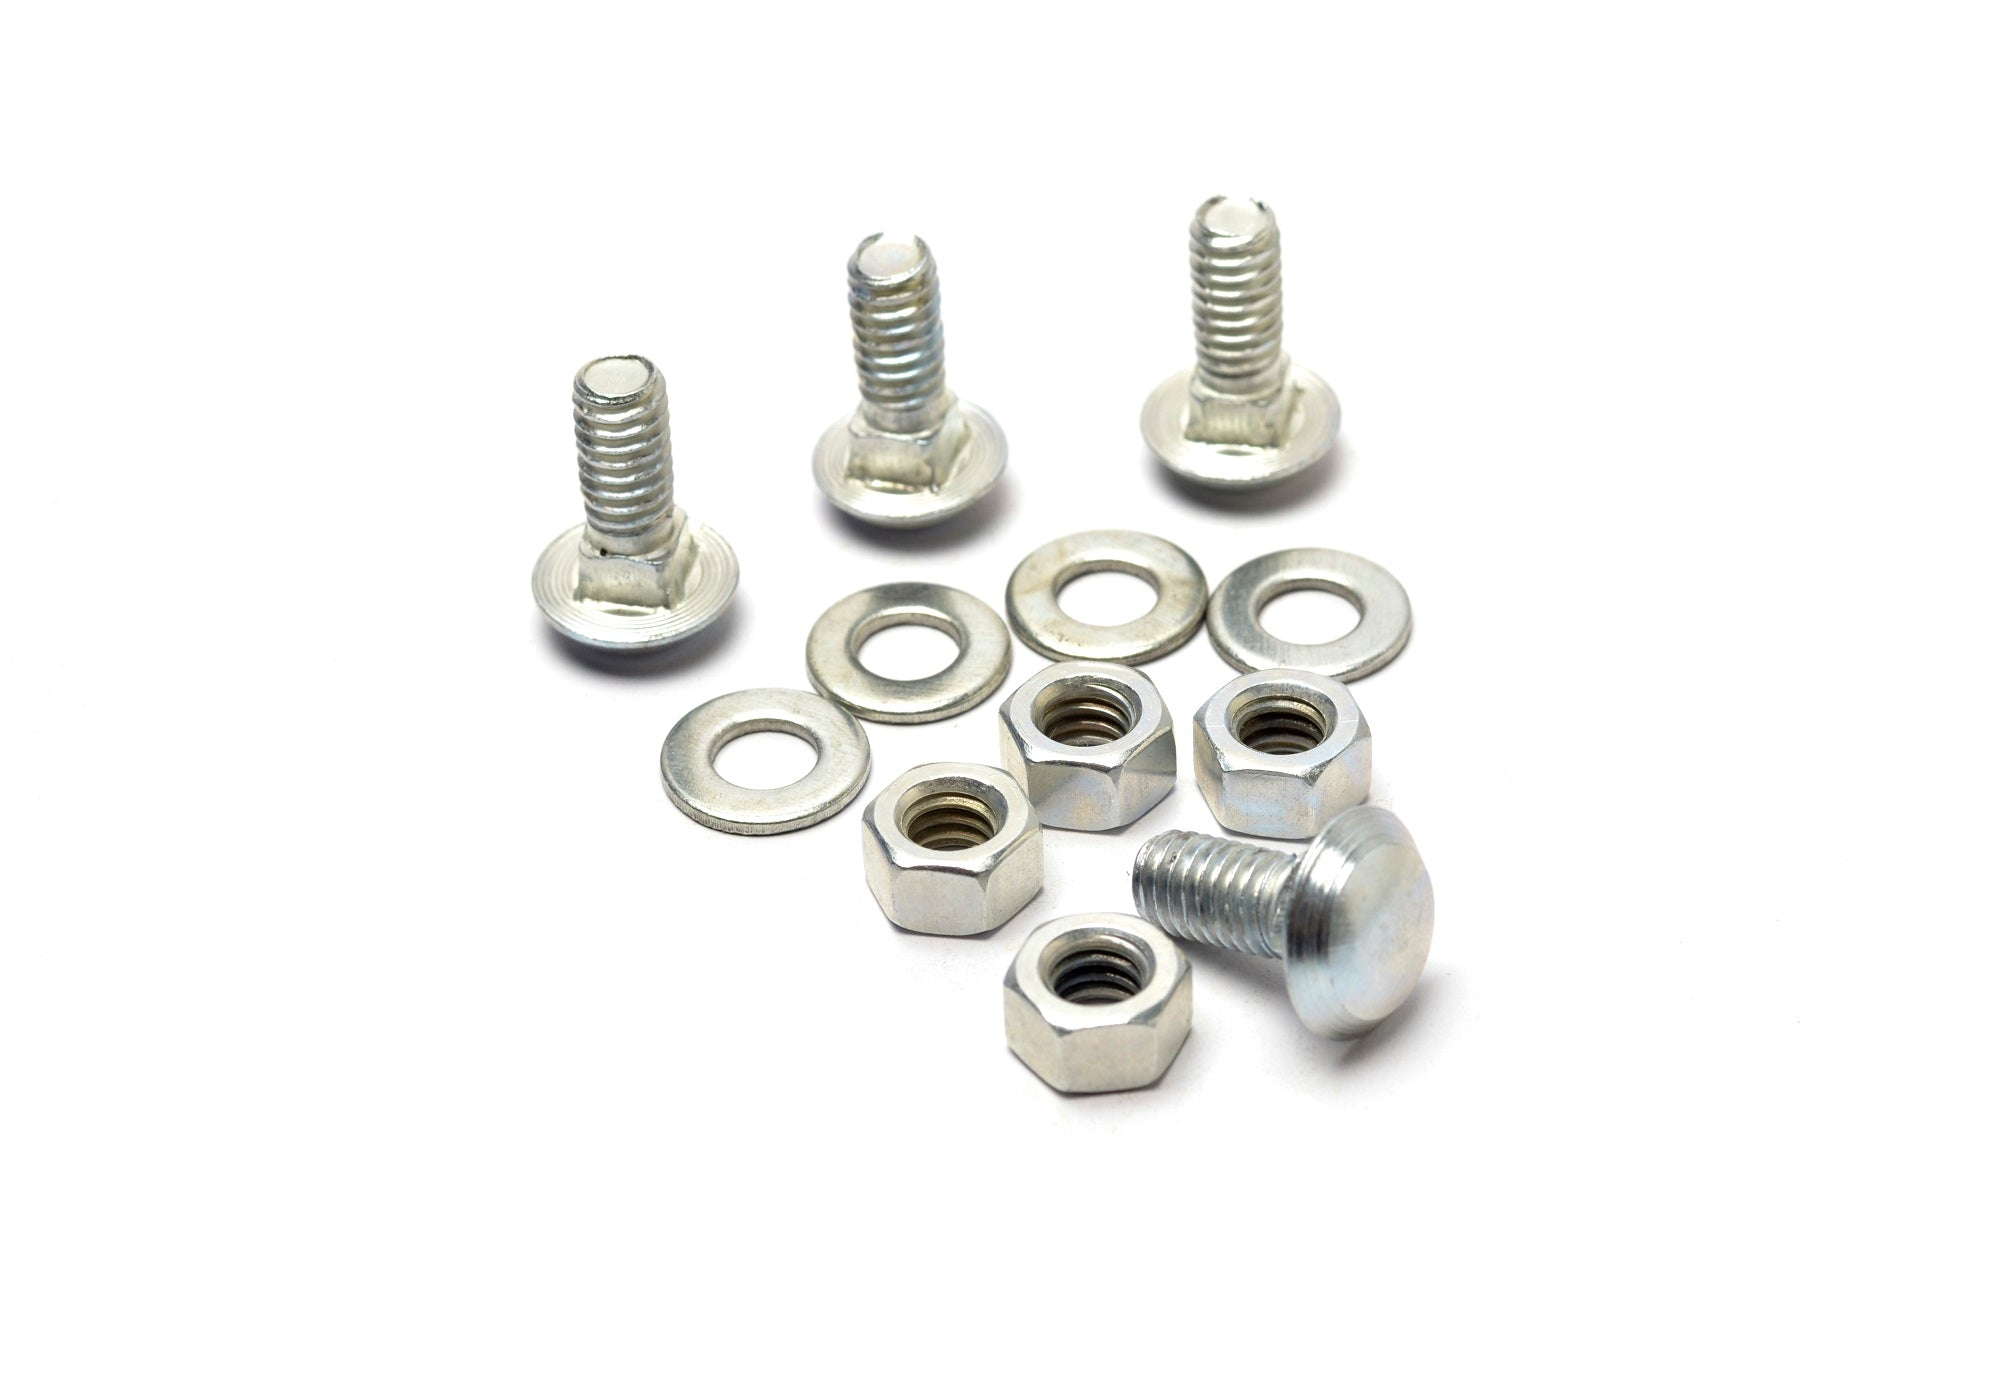 TMT CARRIAGE BOLTS KIT OF FOUR